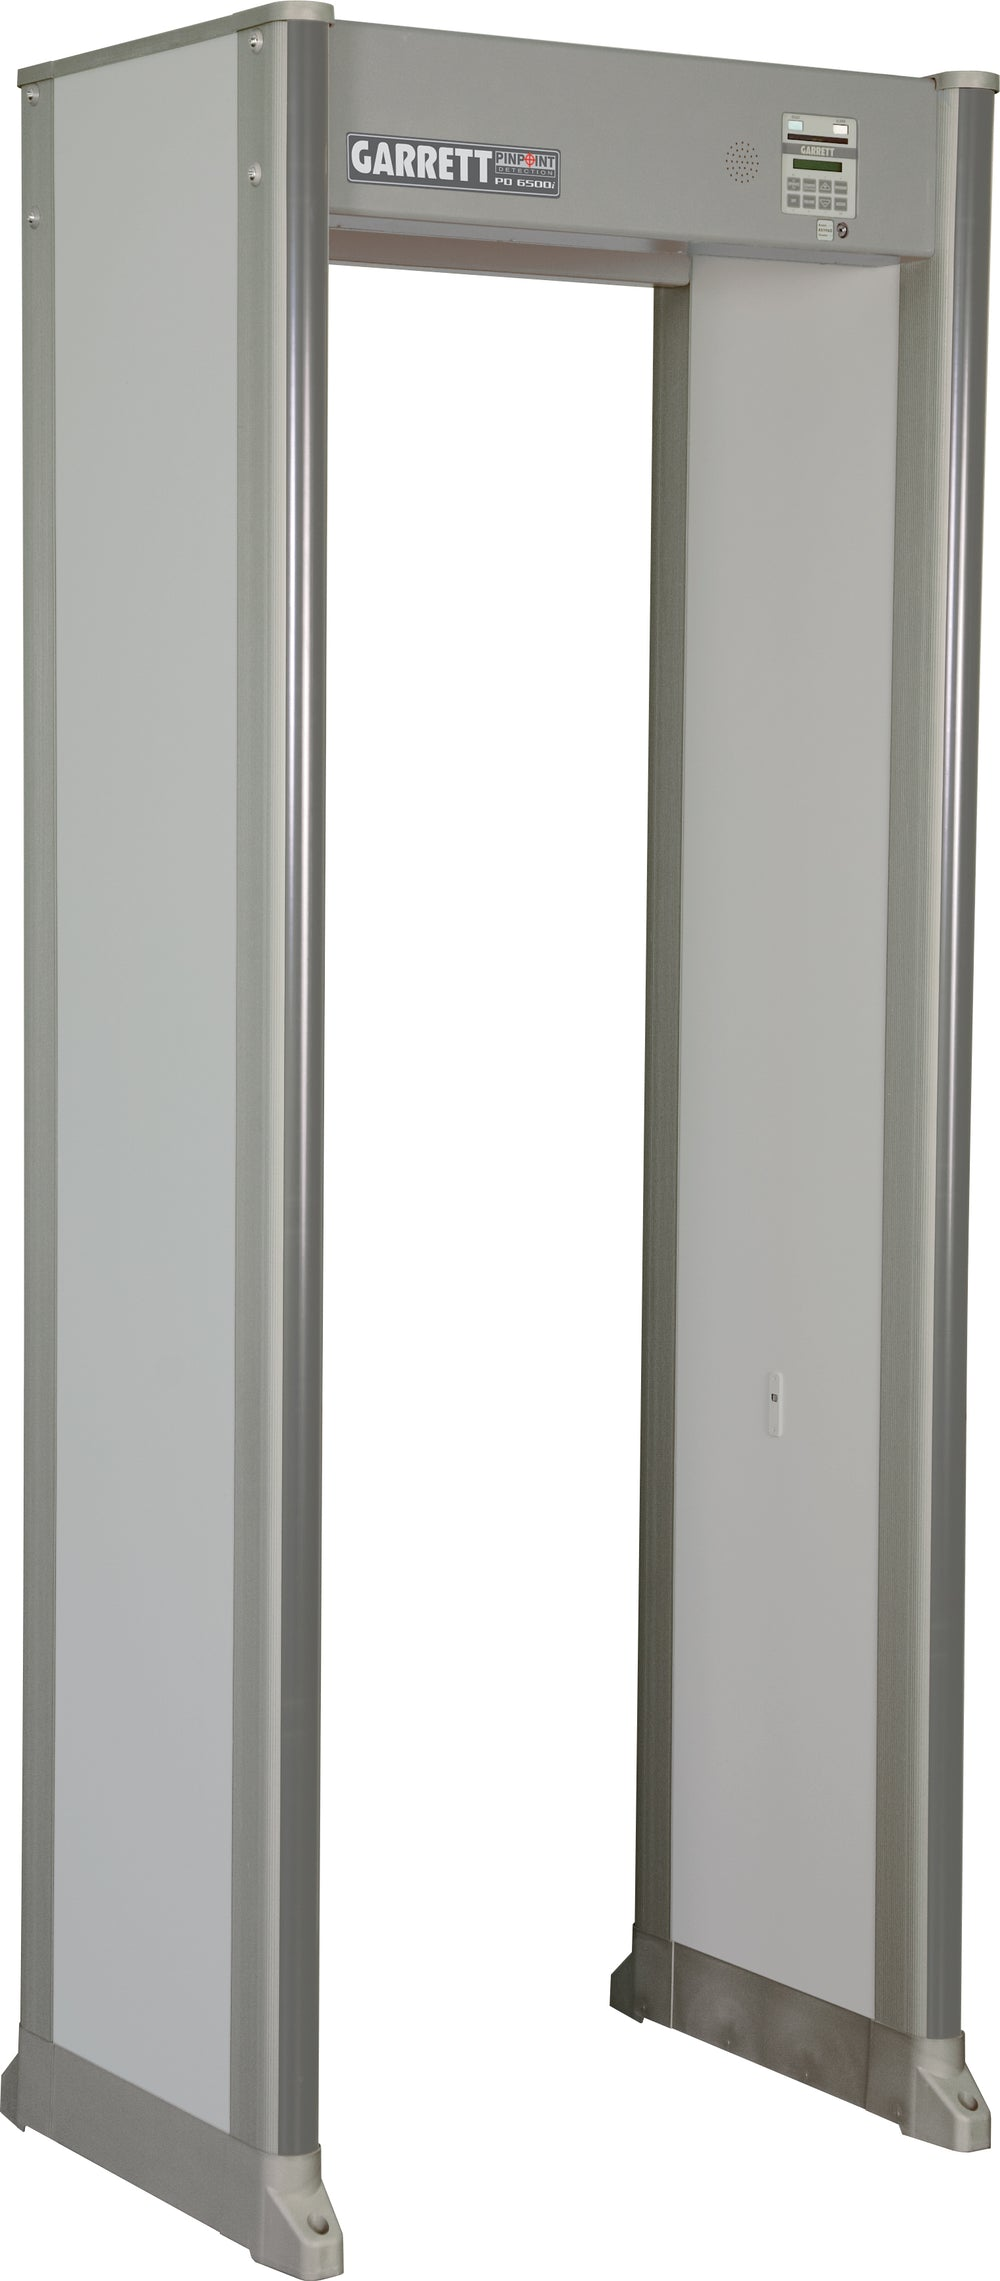 Magnascanner PD6500i Walk Through Metal Detector - Security Detection